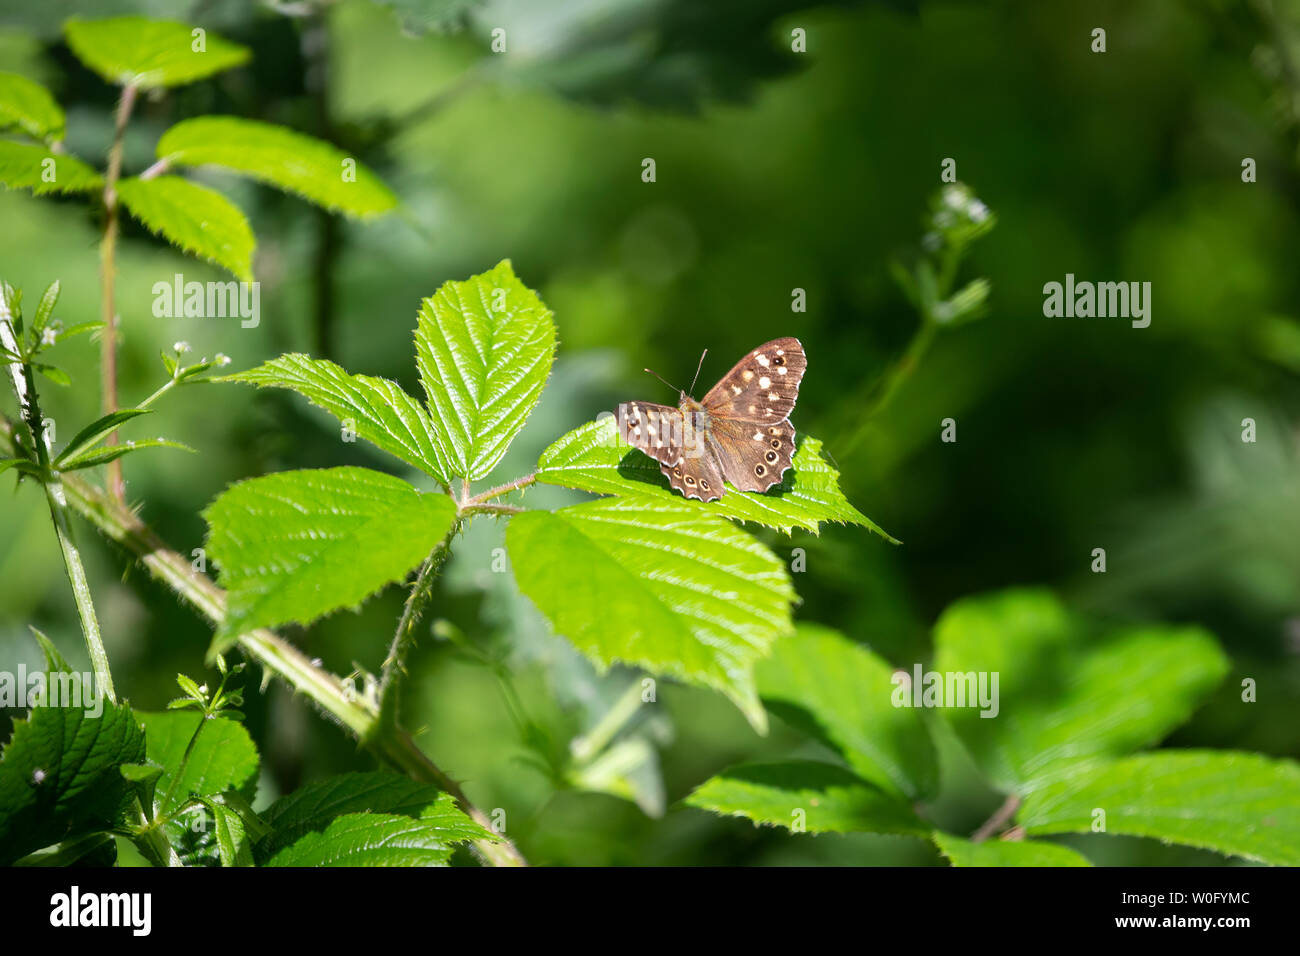 Speckled wood butterfly Pararge aegeria with wings open in the sunshine and settled on a bramble bush - Stock Image